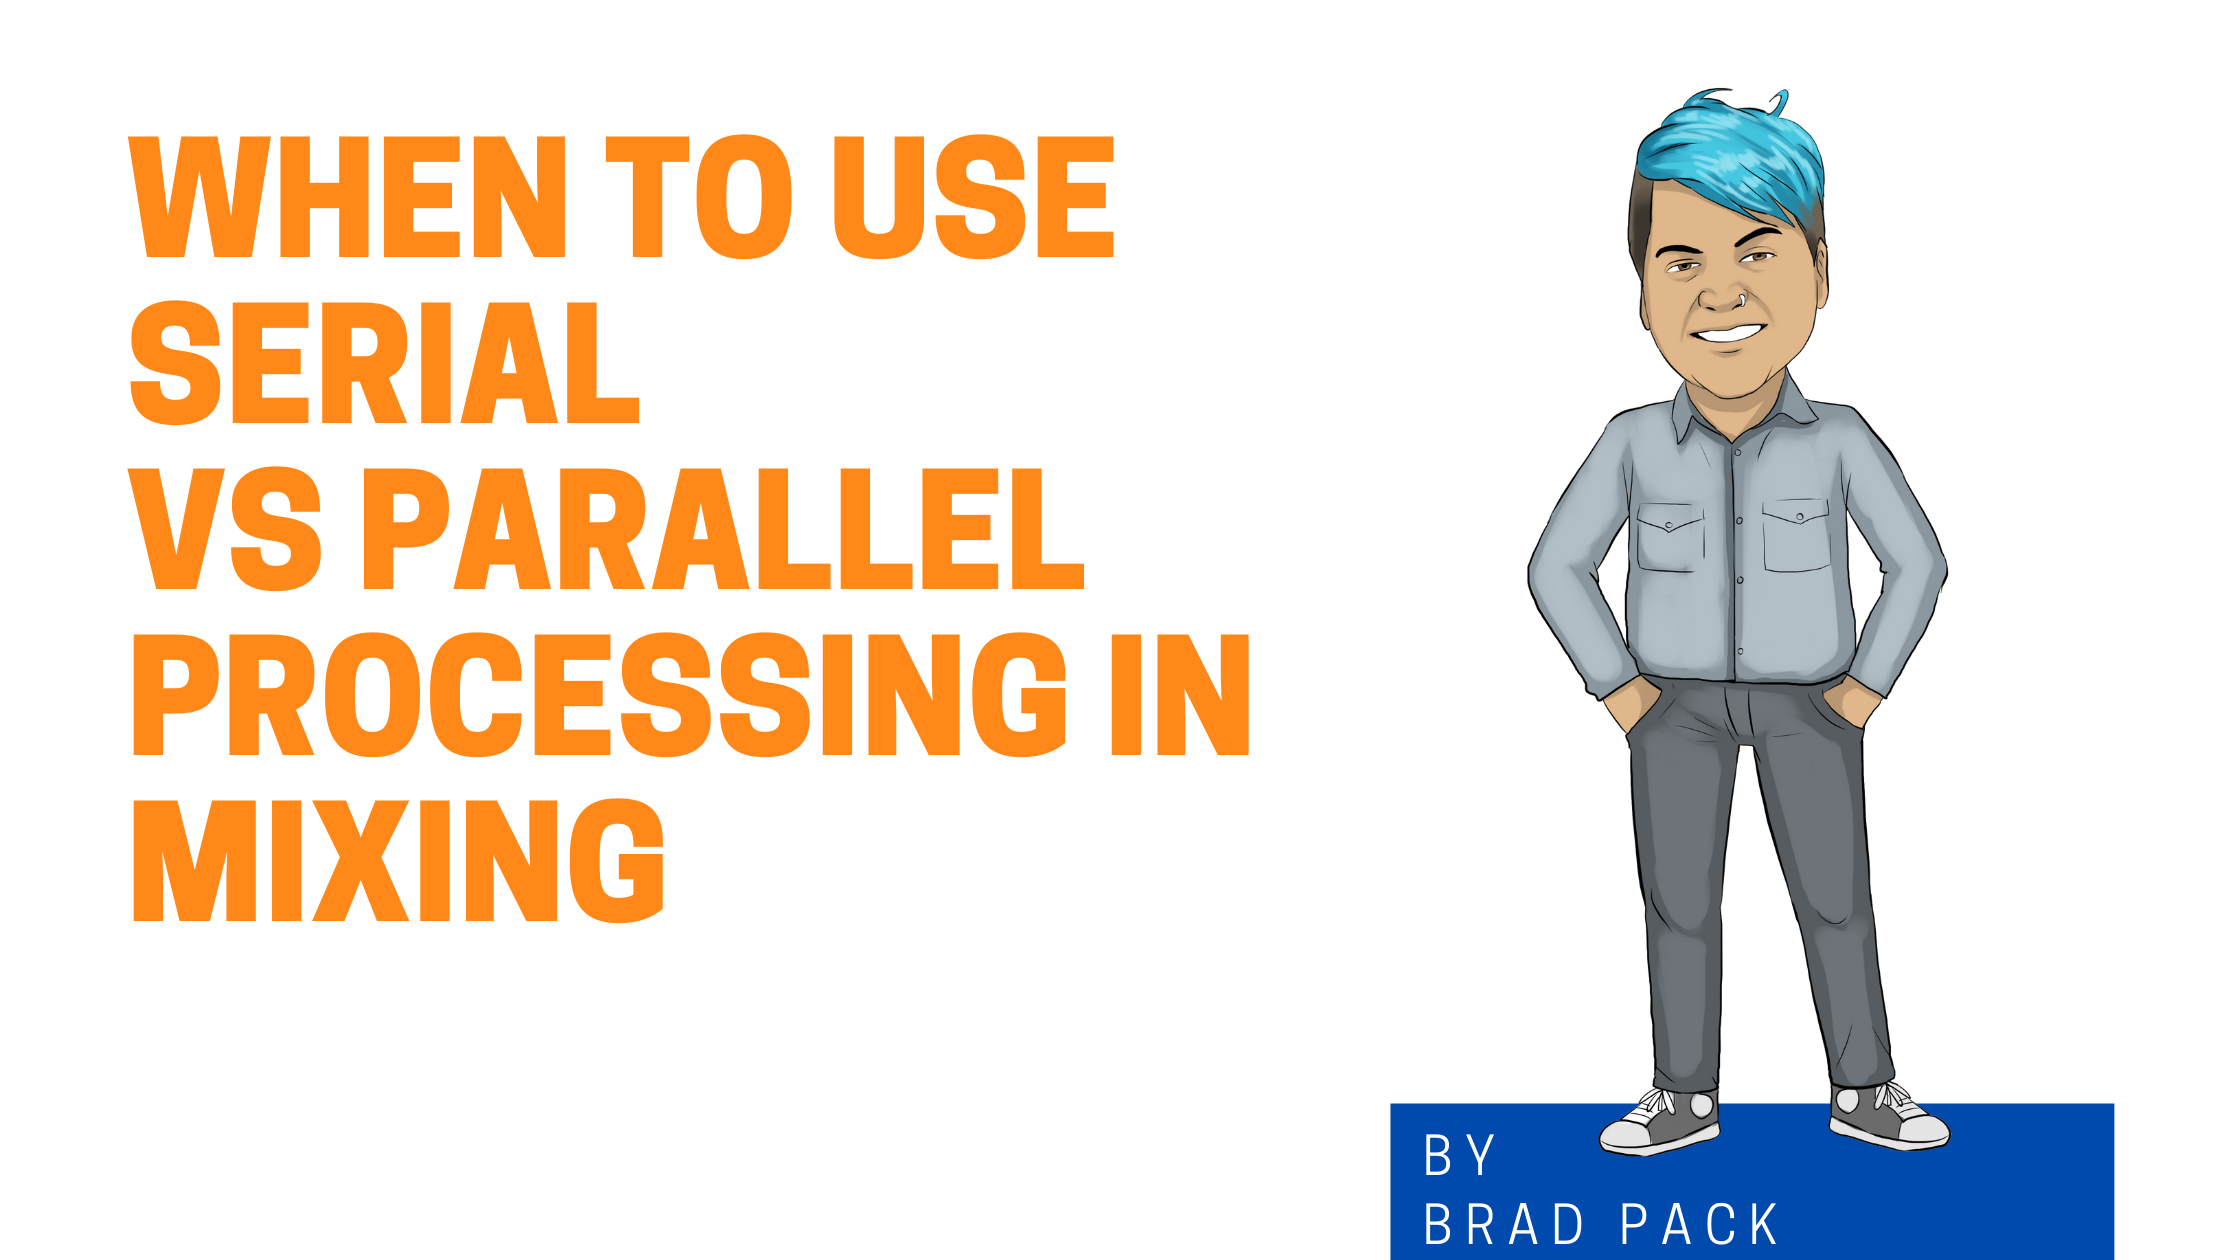 When To Use Serial vs Parallel Processing In Mixing Graphic Image